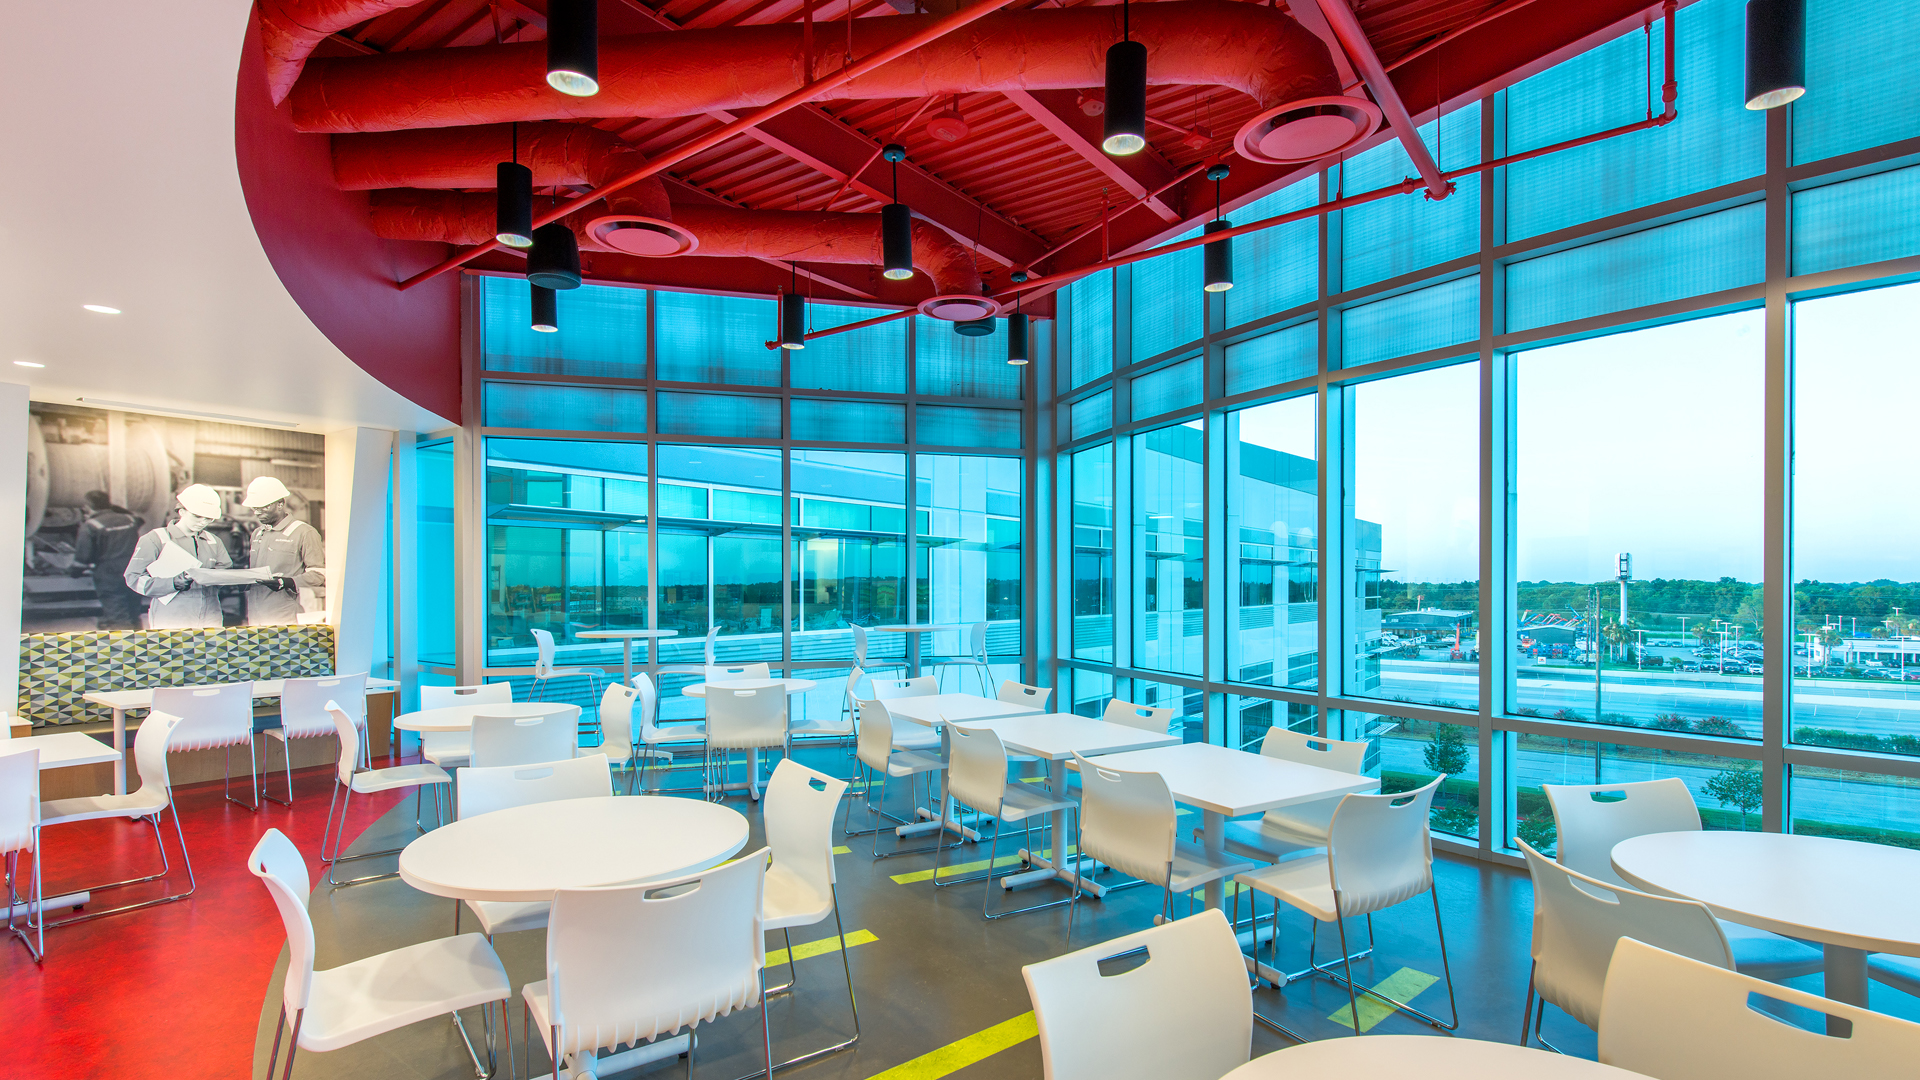 Corporate Interior Design Houston Subsea 7 Breakroom Dining Area Views Colorful